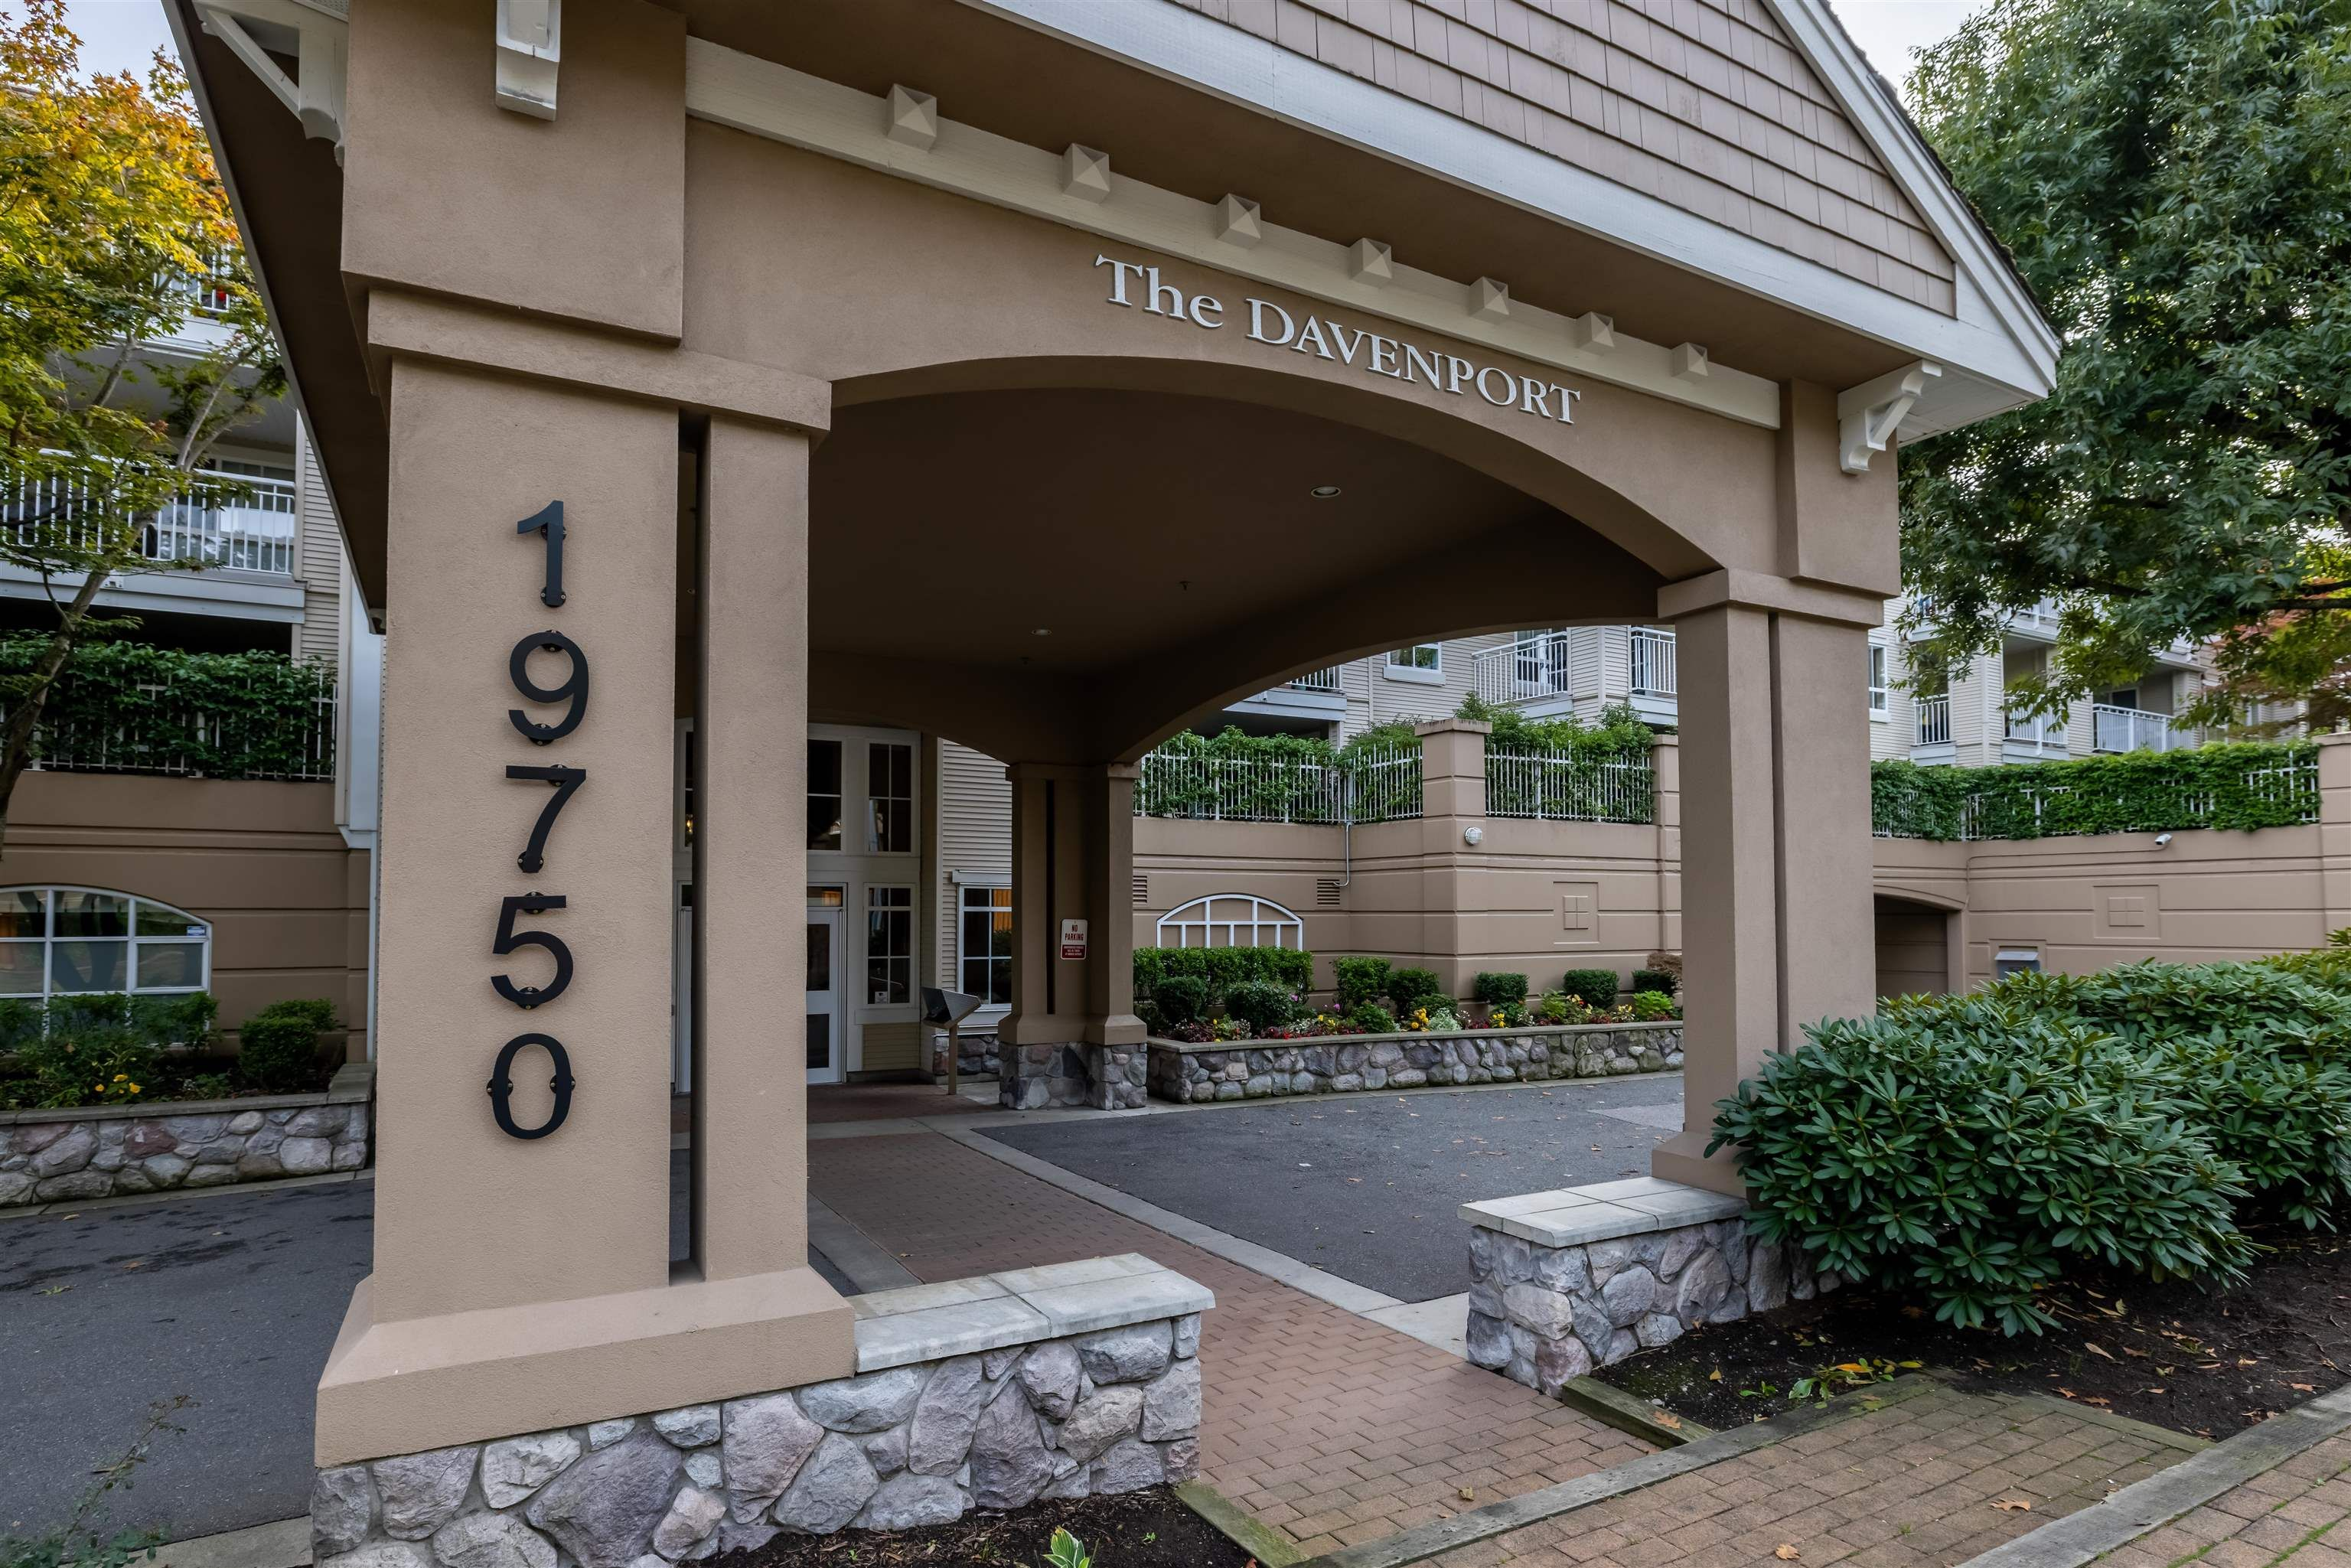 """Main Photo: 309 19750 64 Avenue in Langley: Willoughby Heights Condo for sale in """"The Davenport"""" : MLS®# R2624273"""